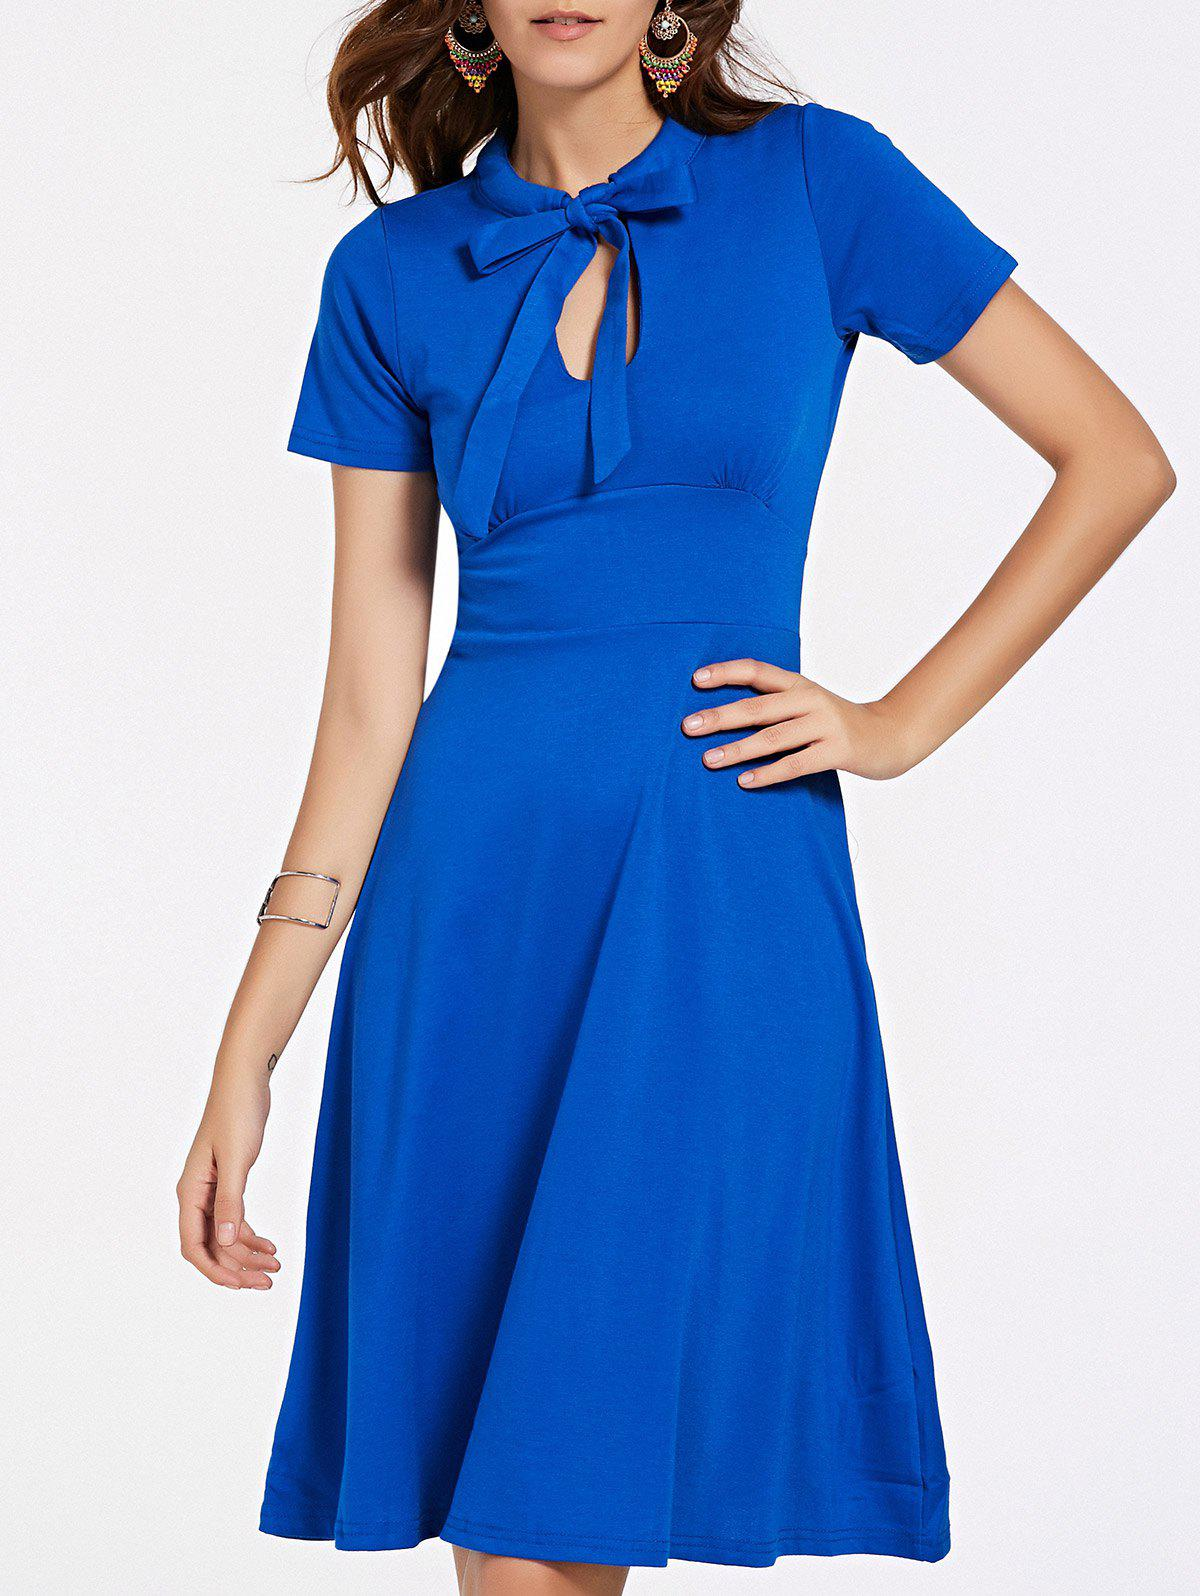 Stylish Women's Short Sleeve Bow Tie Neck Flare Dress - BLUE XL